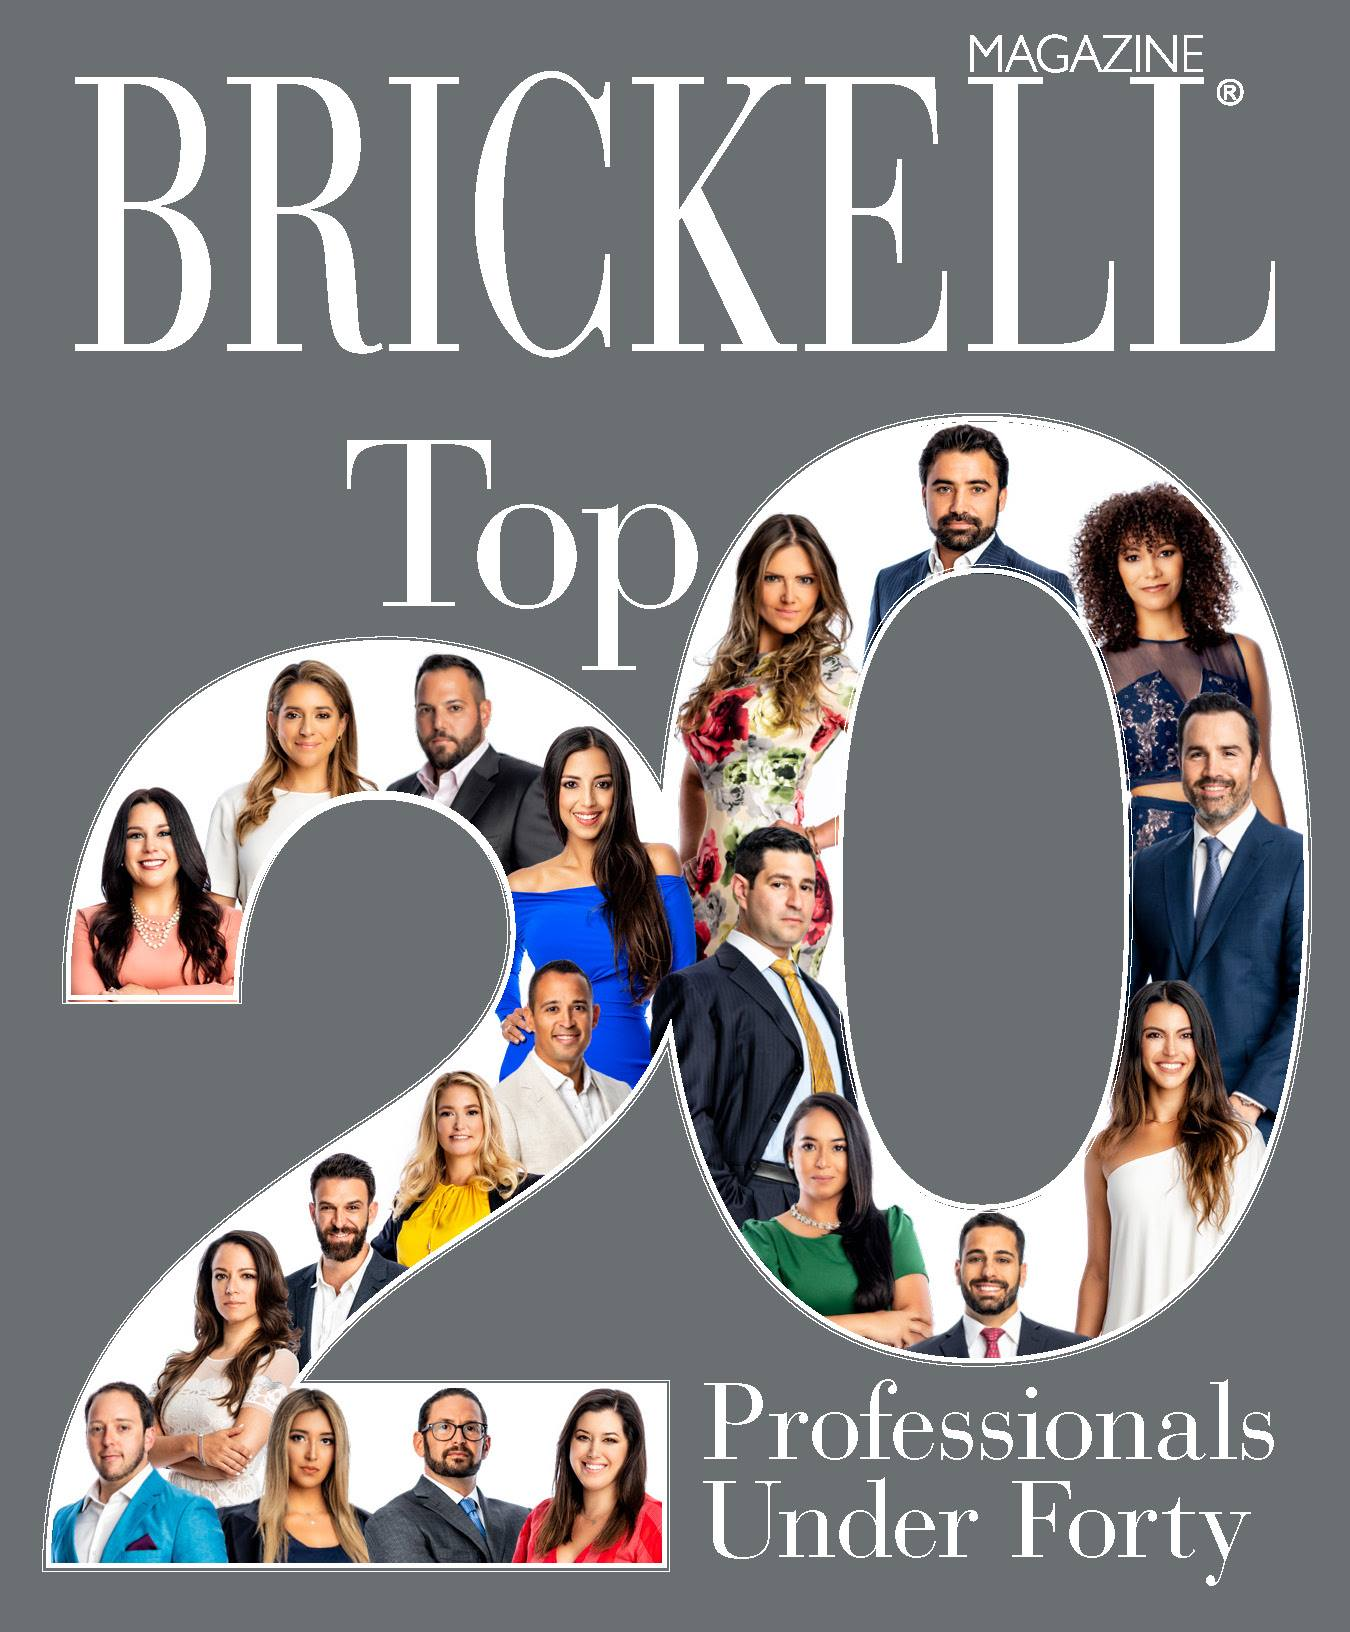 Brickell Magazine - May/June 2018 Issue (Page 69)